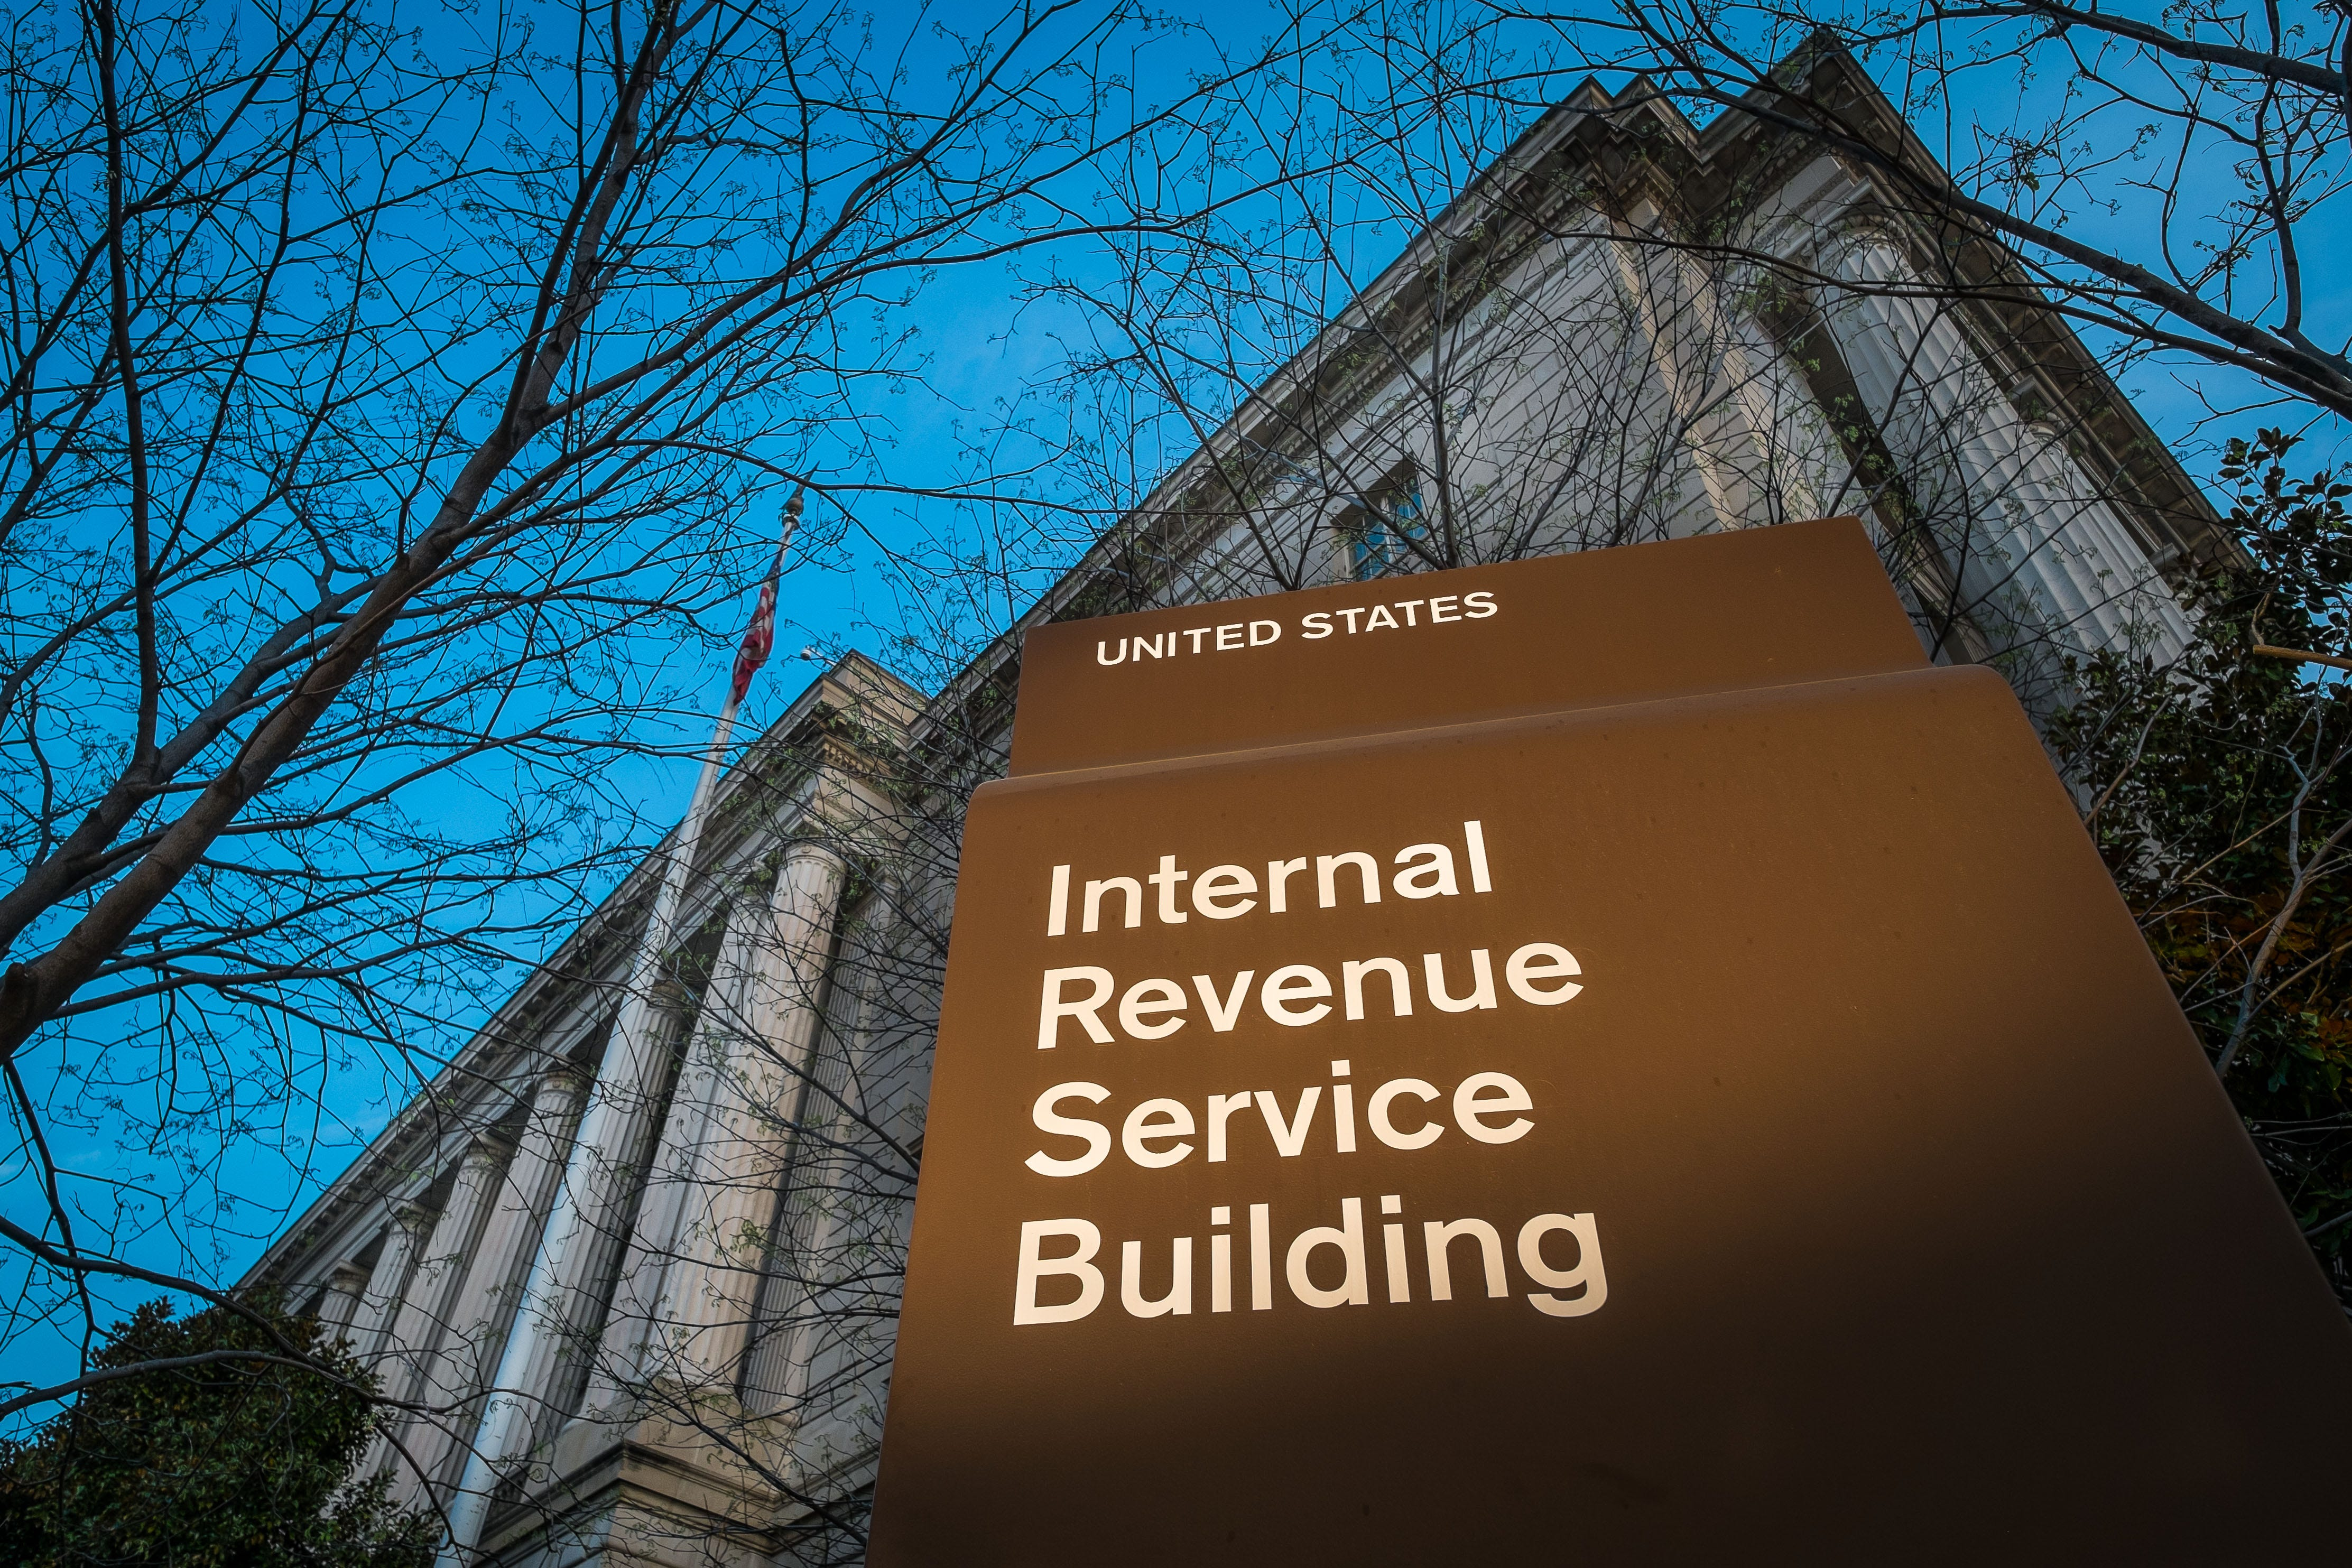 IRS service at 'unacceptably low levels'